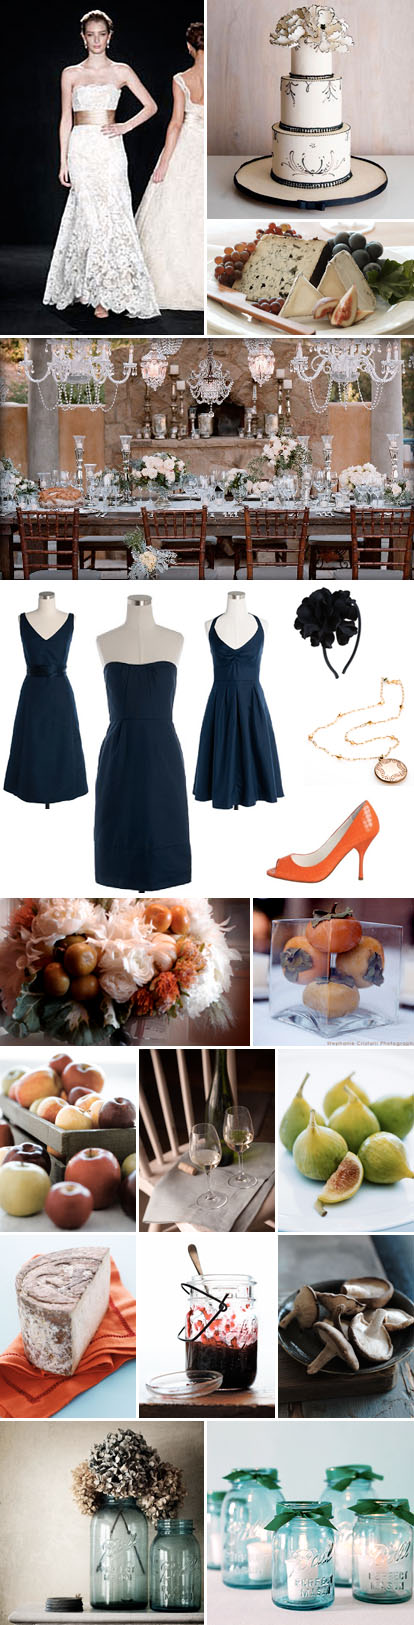 navy blue, cream and orange wedding color palette for a rustic and elegant fall foodie wedding